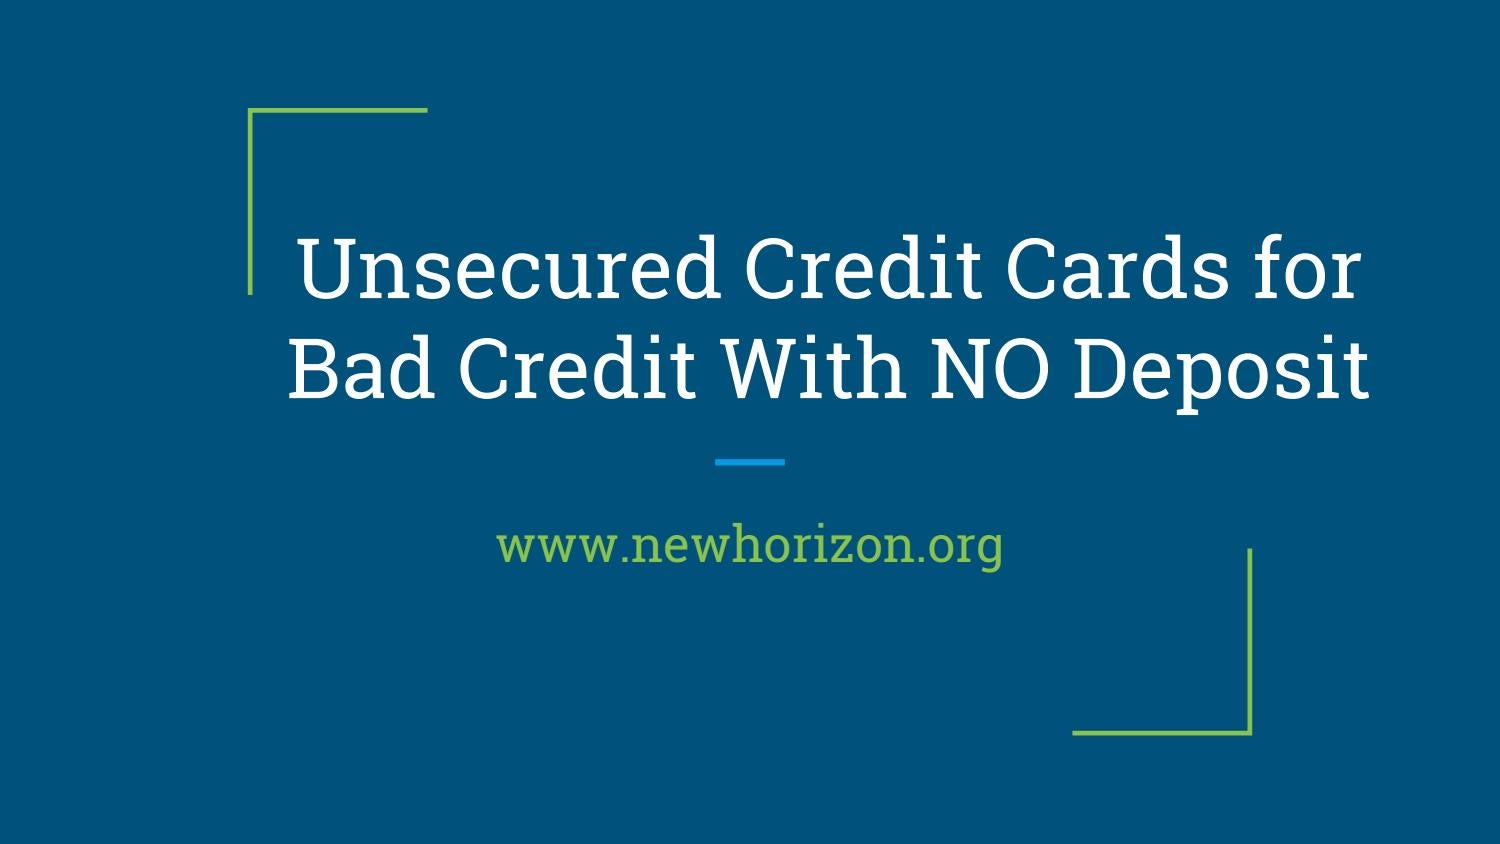 Credit Cards For Bad Credit >> Unsecured Credit Cards For Bad Credit With No Deposit By